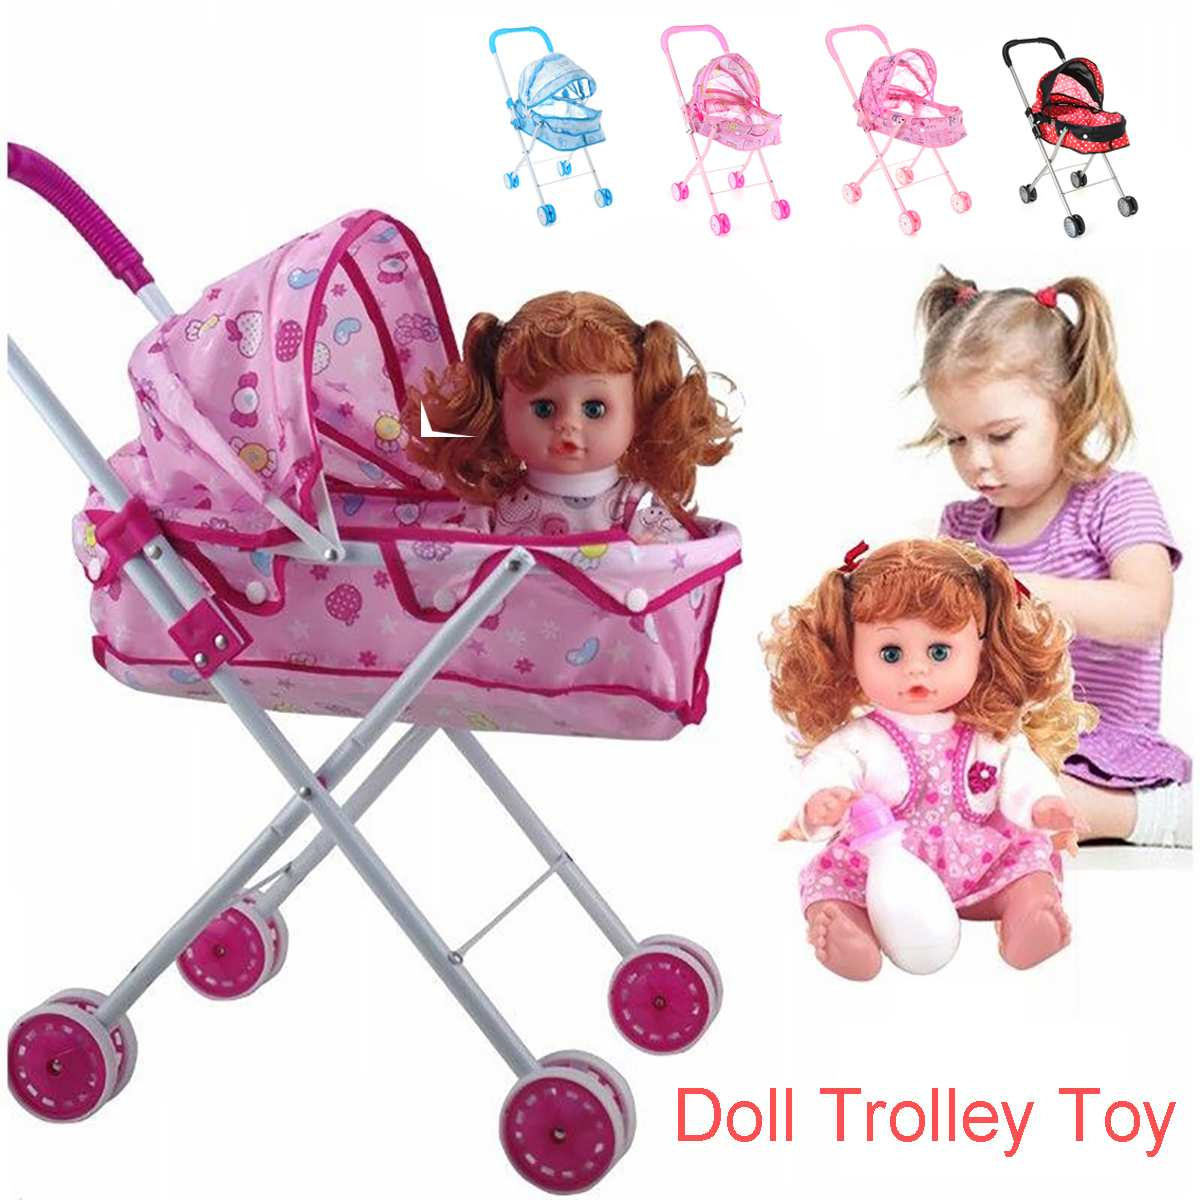 Baby Stroller Infant Carriage Trolley Nursery Toy For Simulation Doll Accessory Girls Gift For Girls